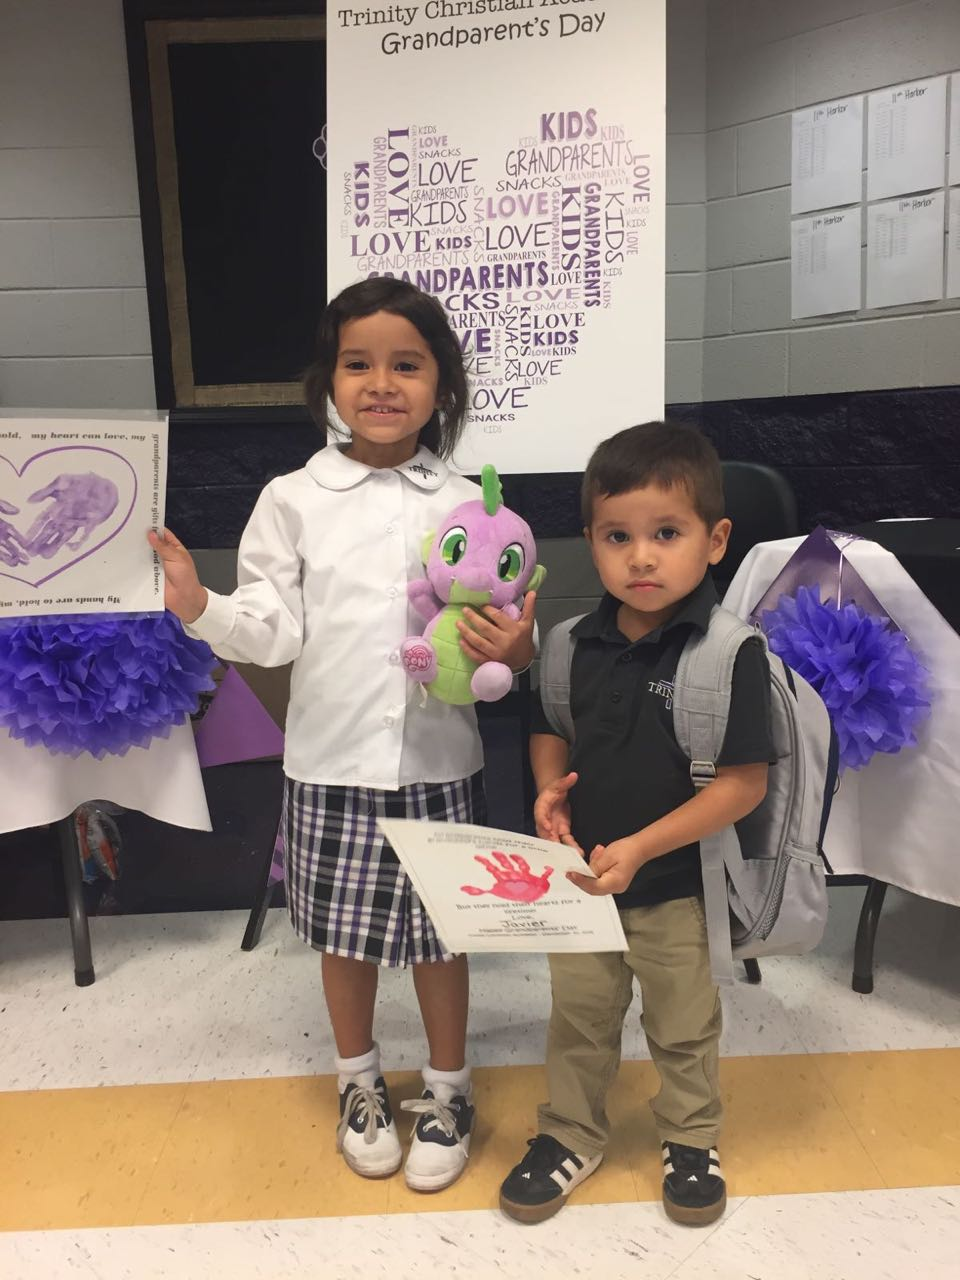 Our grandchildren wishing us Happy Grandparents Day. Isabella and Javi